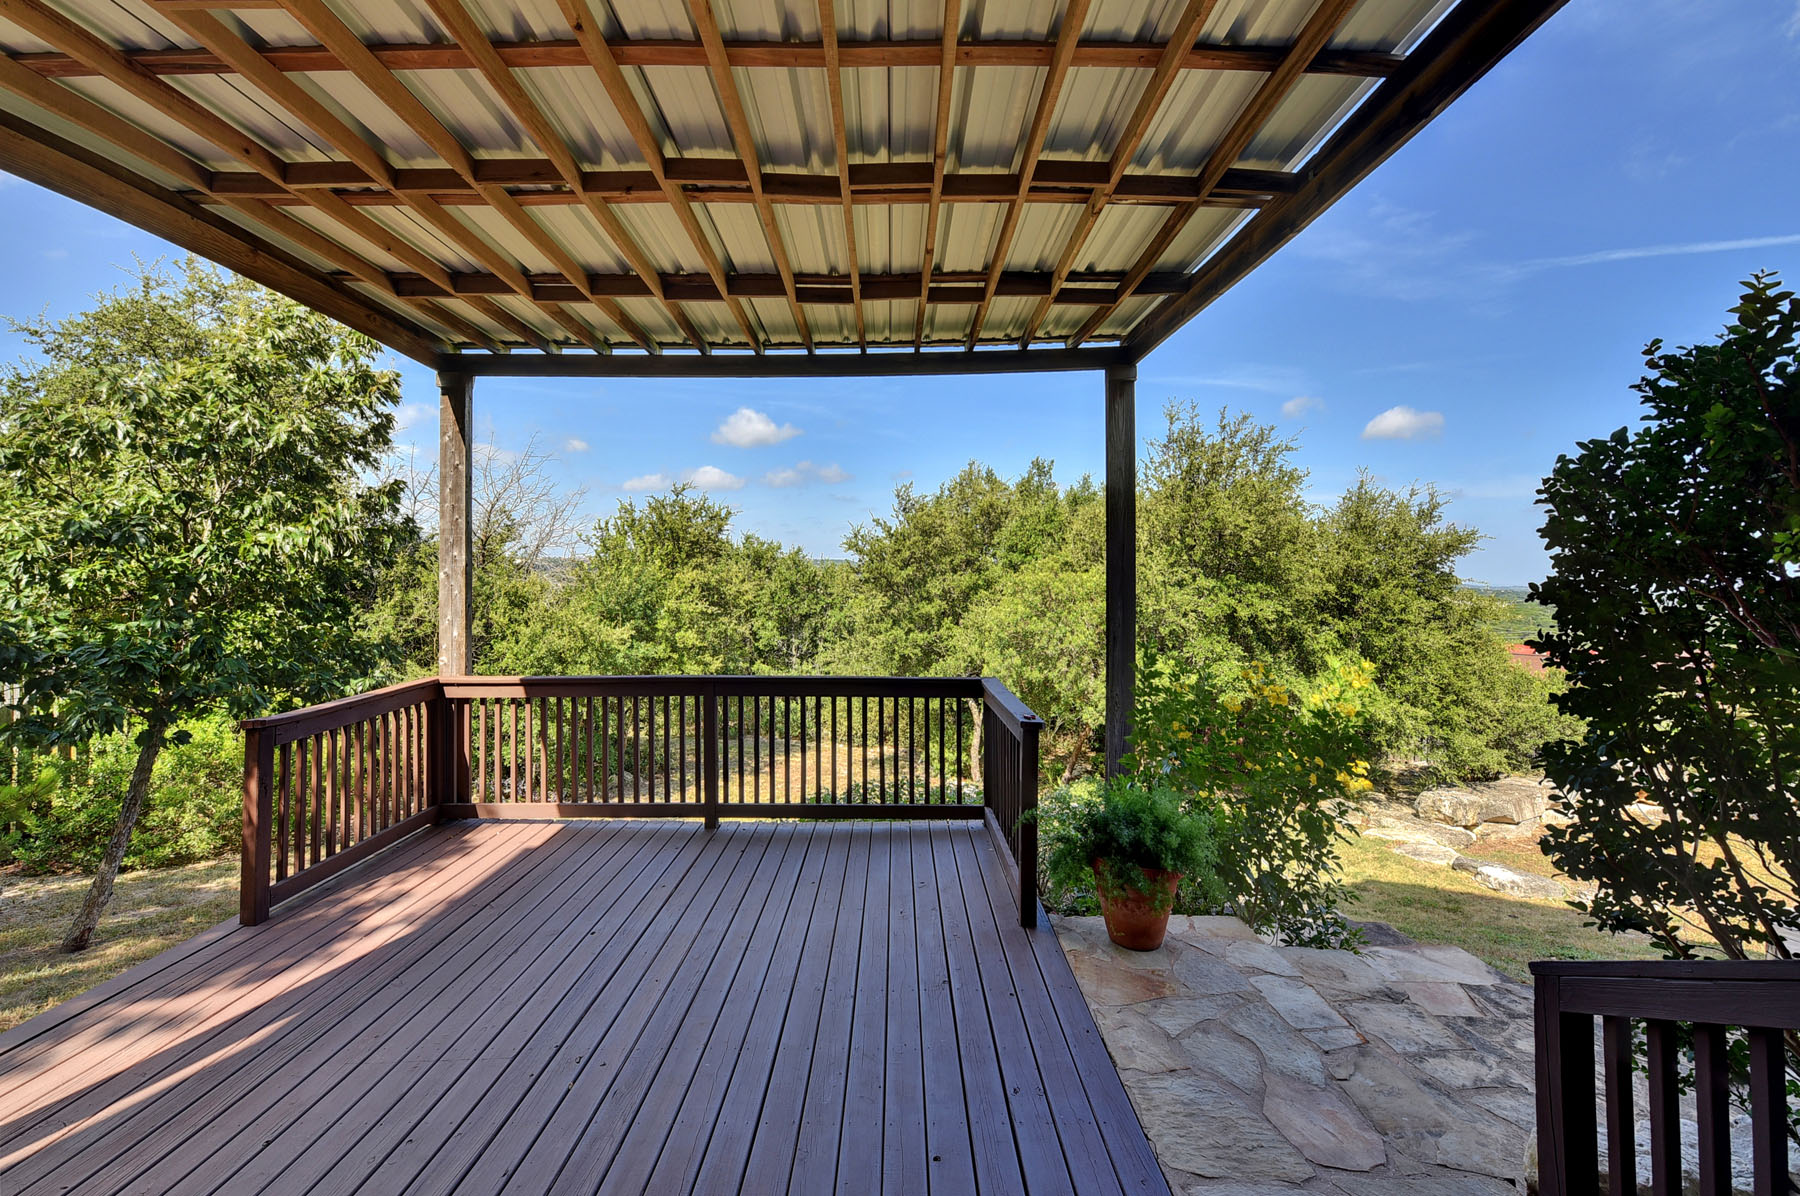 Additional photo for property listing at Great Location! Great Views! Great Price! 1402 Sledge Dr Lakeway, Texas 78734 Estados Unidos